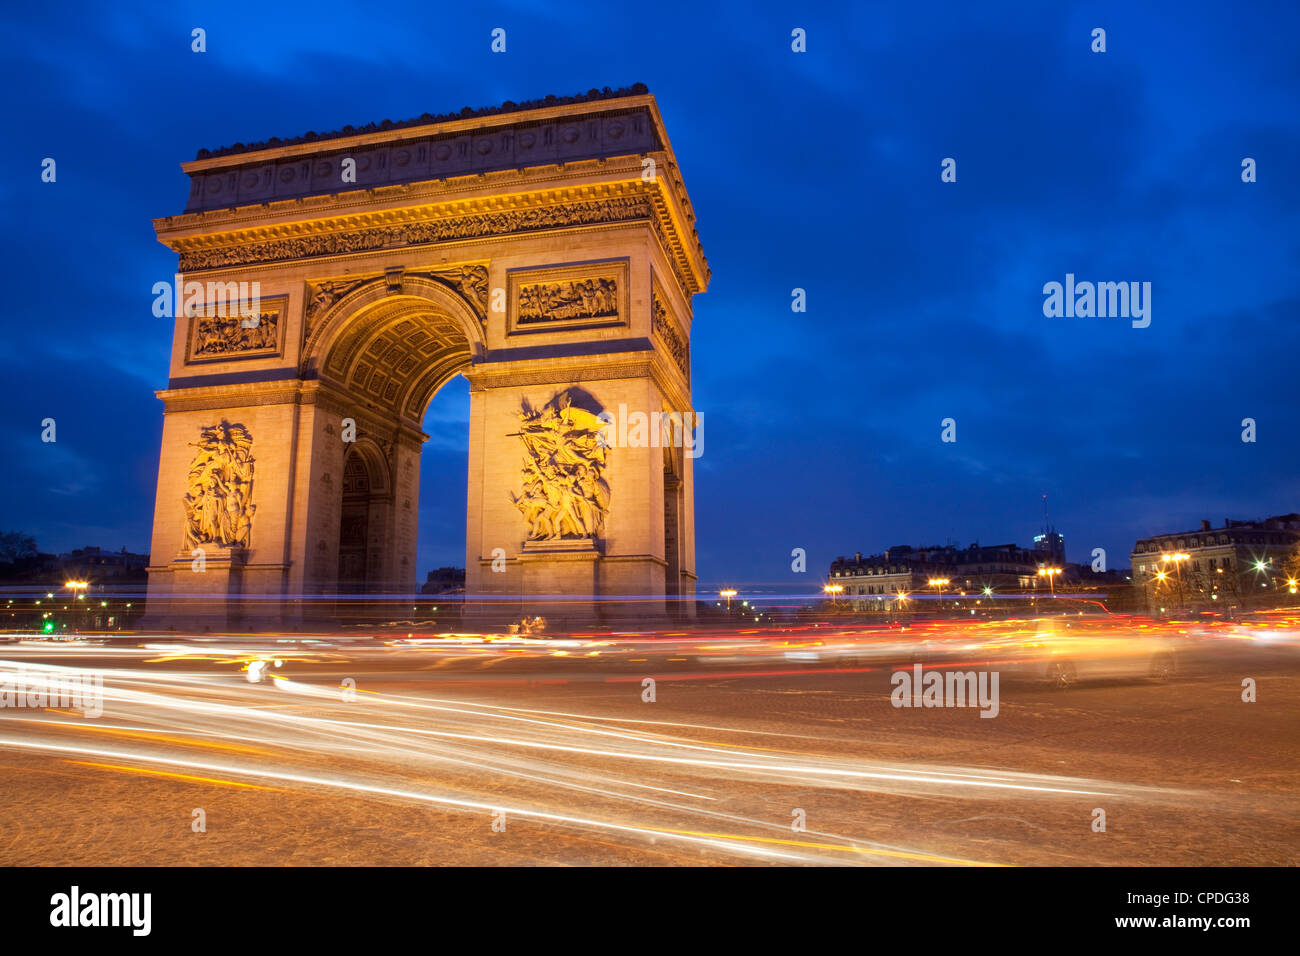 Traffic at the Arc de Triomphe at night, Paris, France, Europe - Stock Image